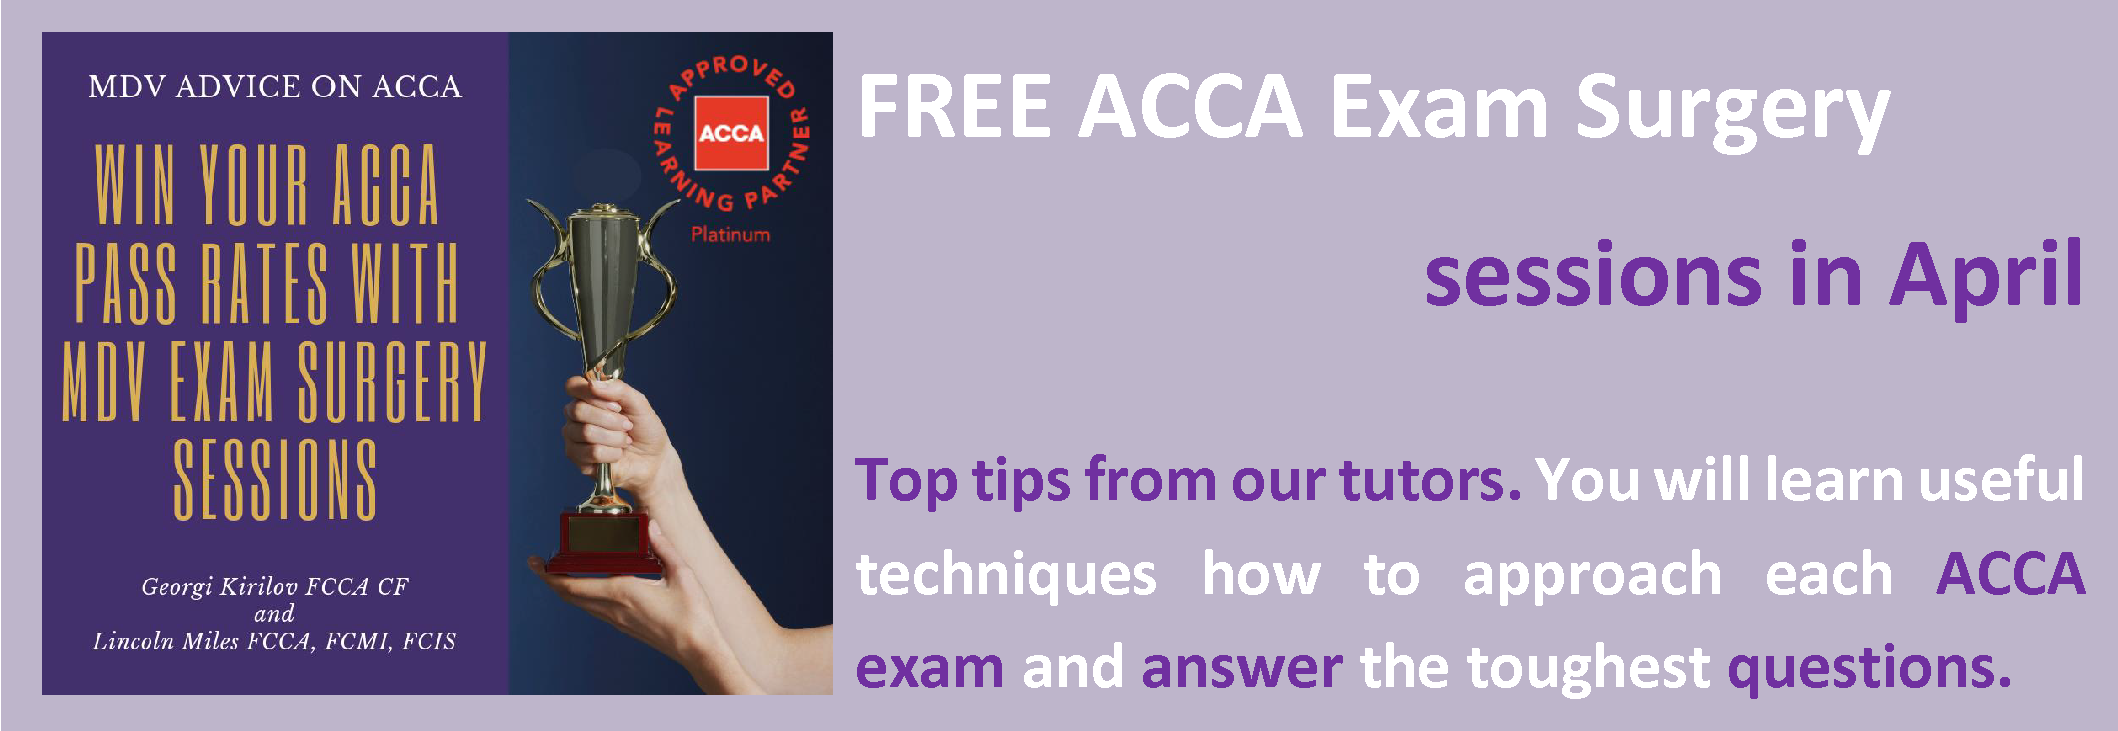 ACCA Exam Surgery sessions